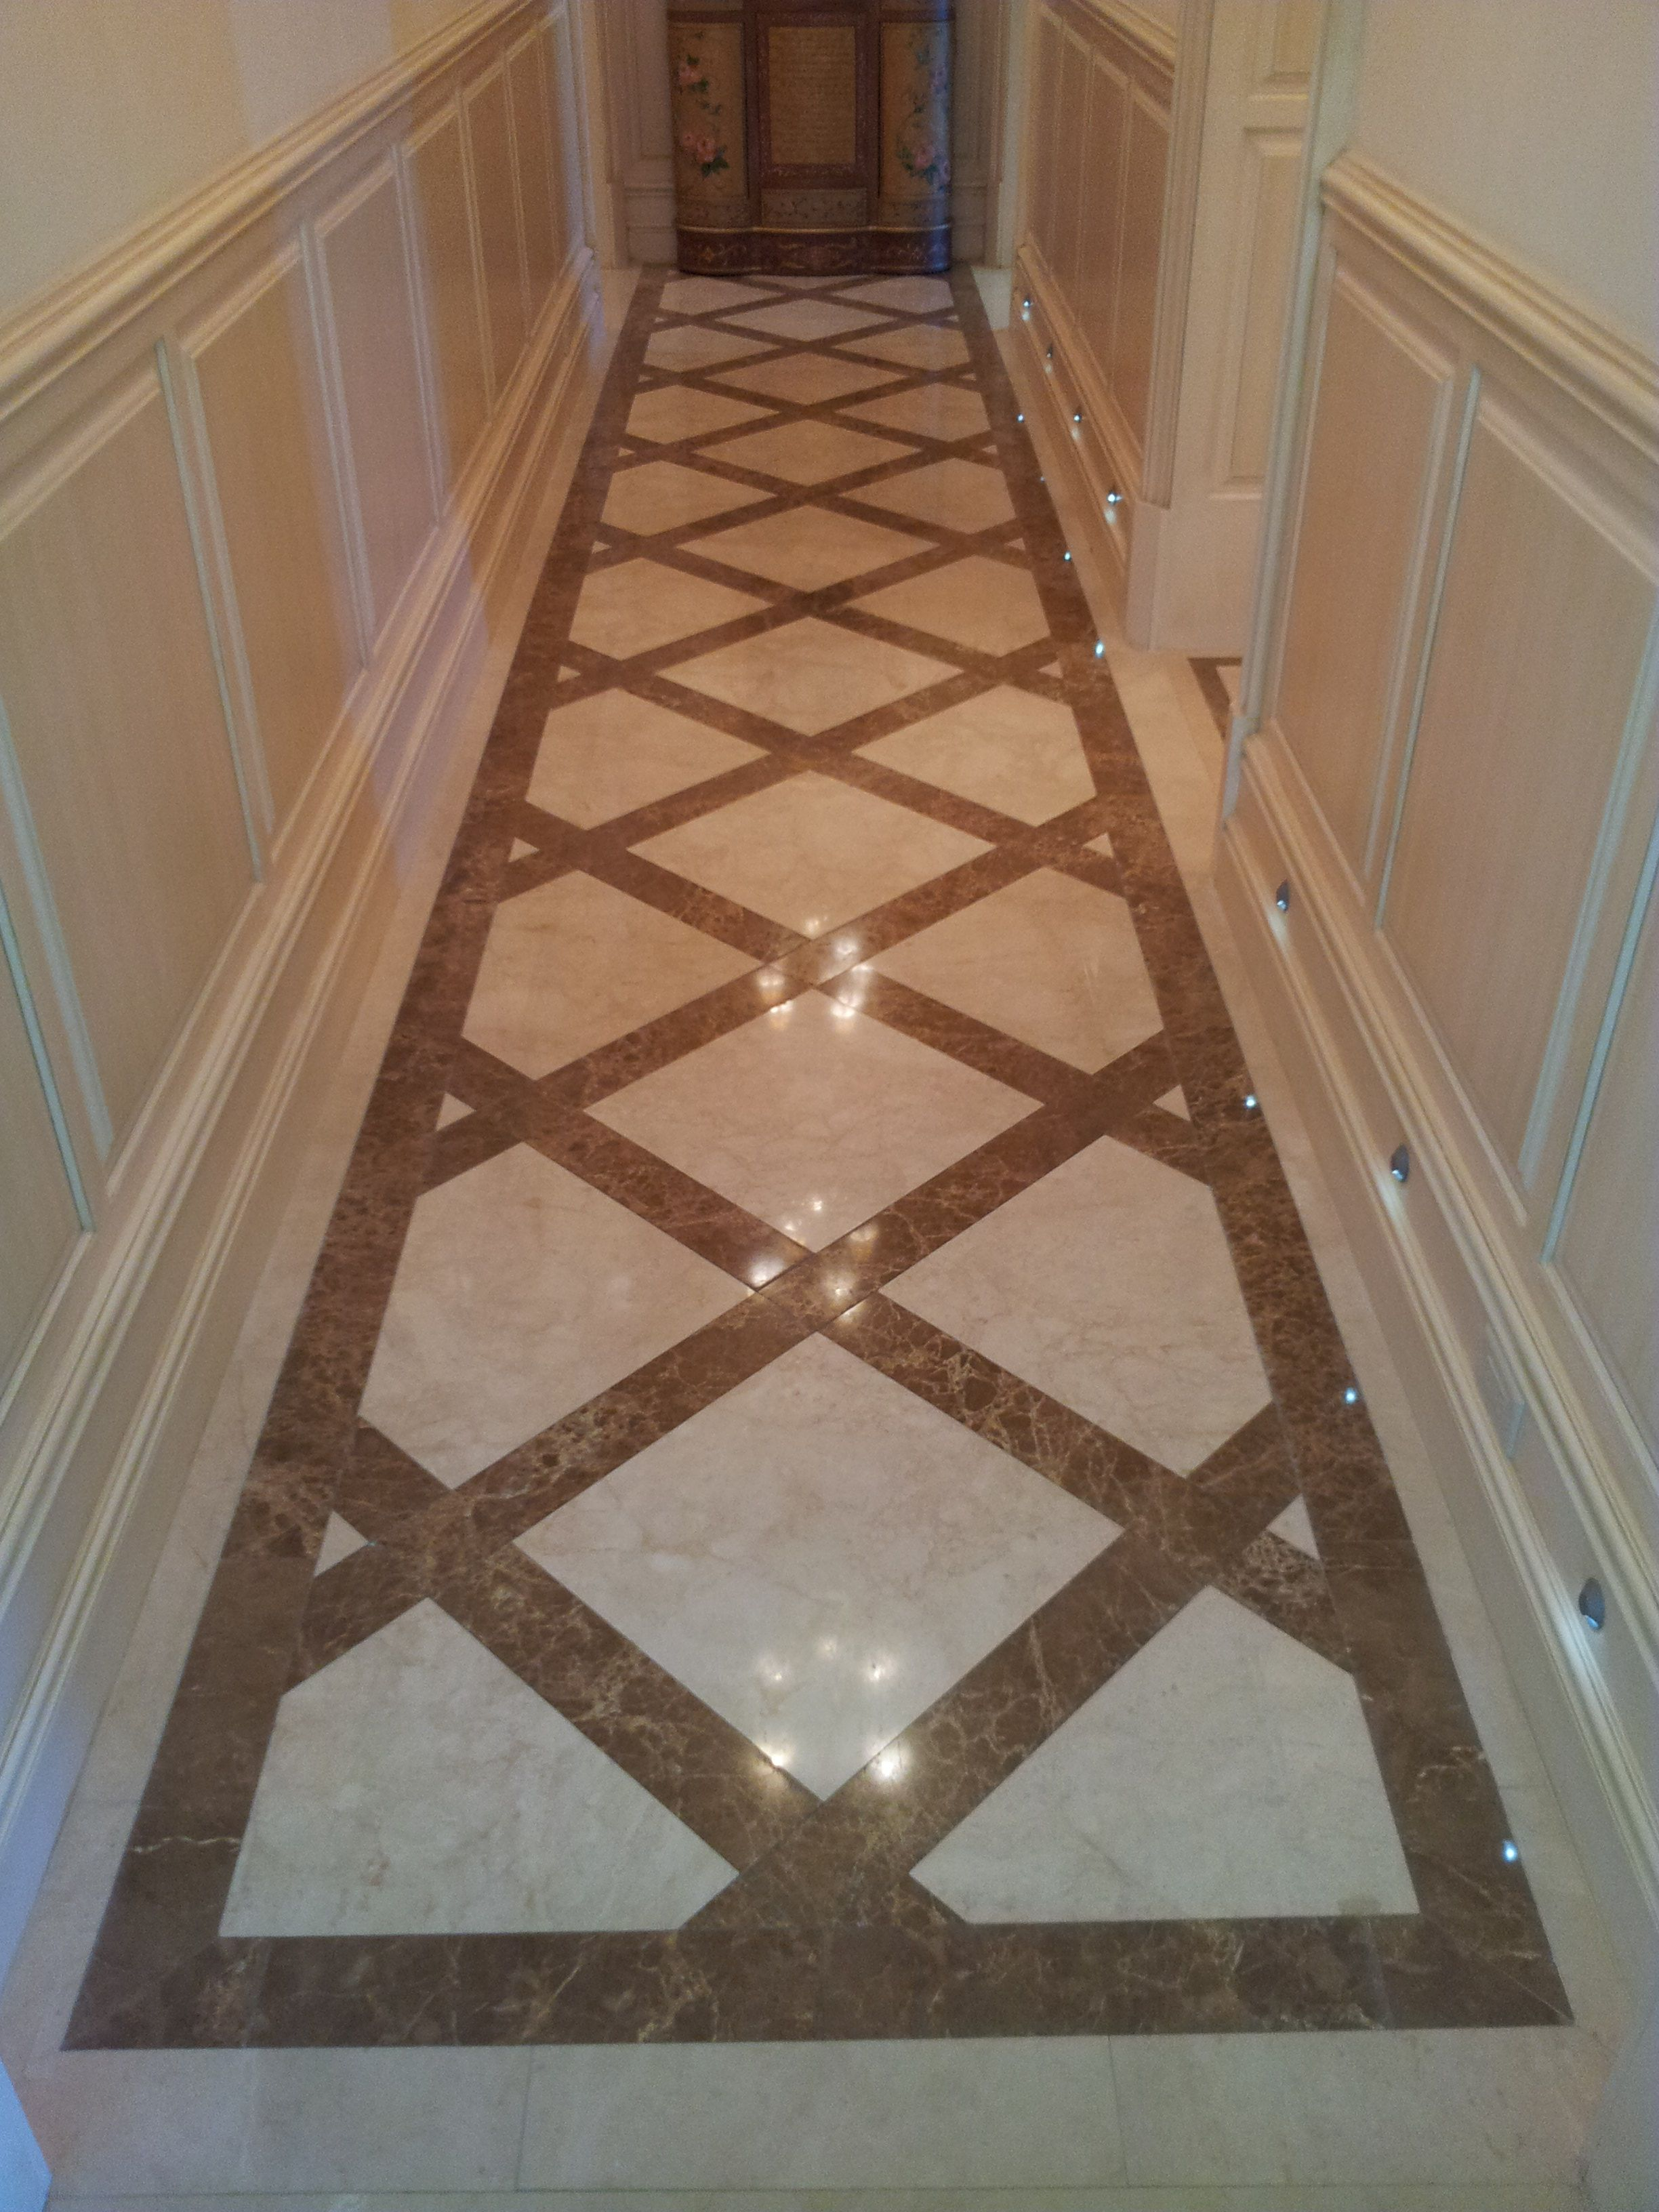 Floor Marbles Designs Crema Marfil And Emperador Light Marble Floors Design By